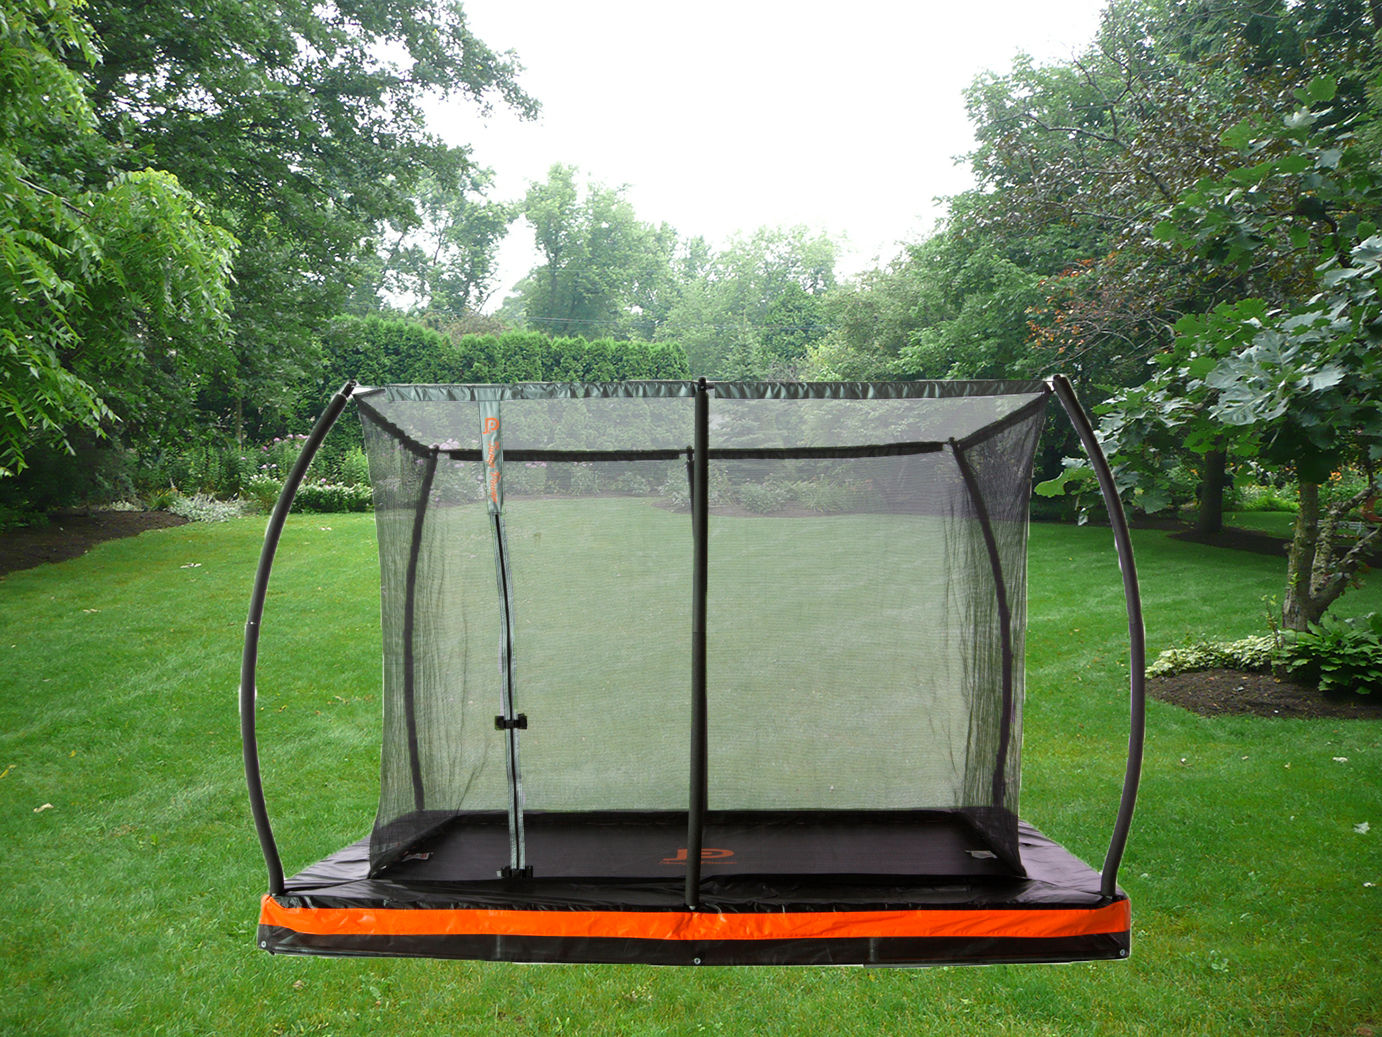 12ft. x 8ft. In-ground Rectangular Tr&oline u0026 Safety Net Combo & 12ft. x 8ft. In-ground Rectangular Trampoline u0026 Safety Net Combo ...